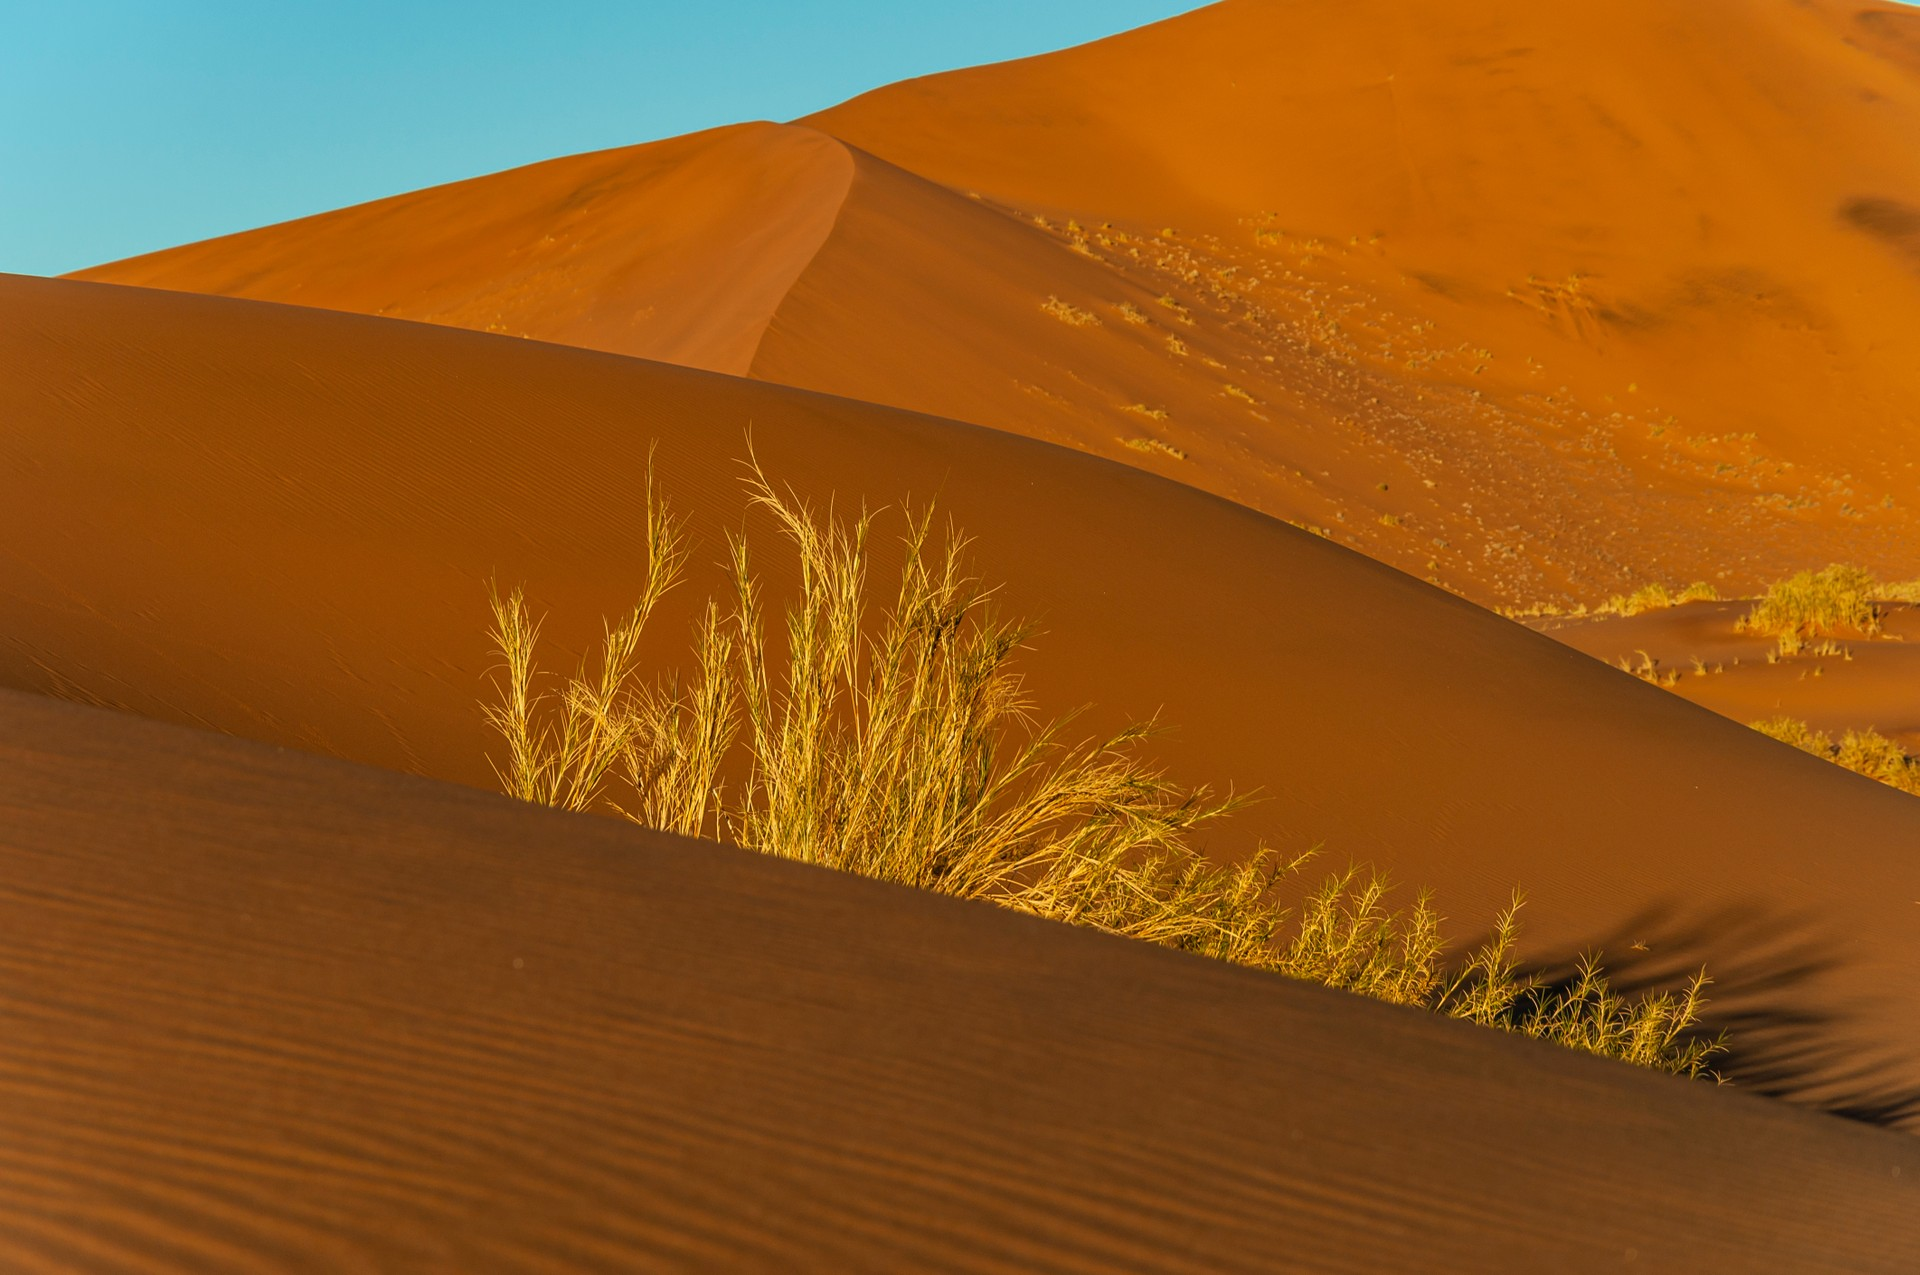 A sand dune in the Kgalagadi Transfrontier National Park